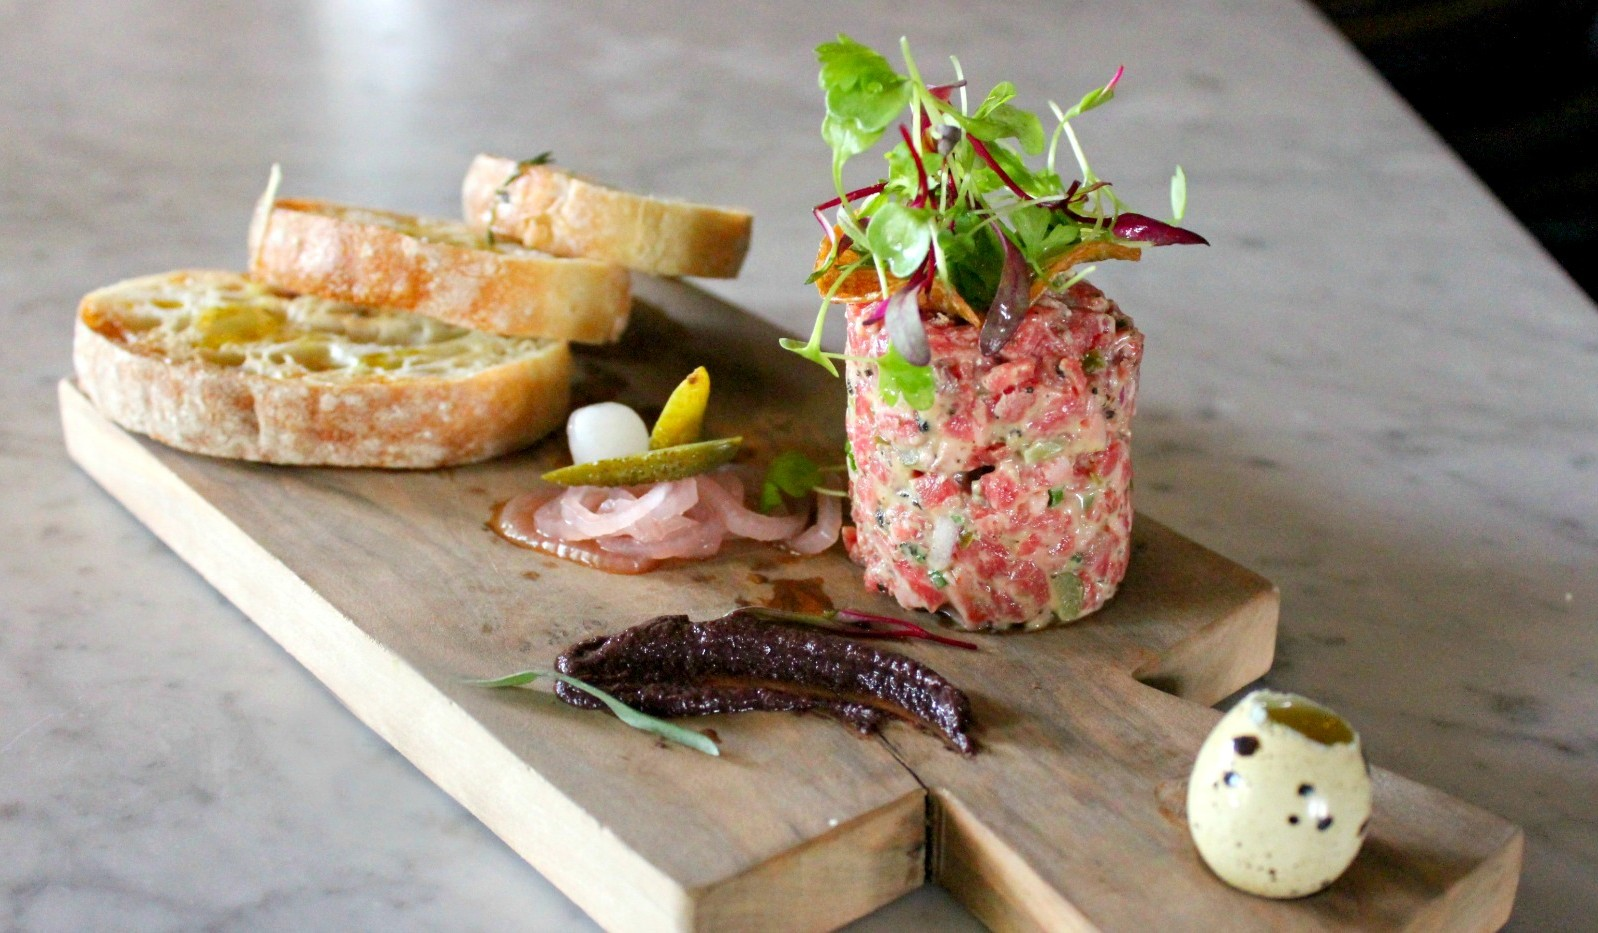 Steak tartare on cutting board with bread slices